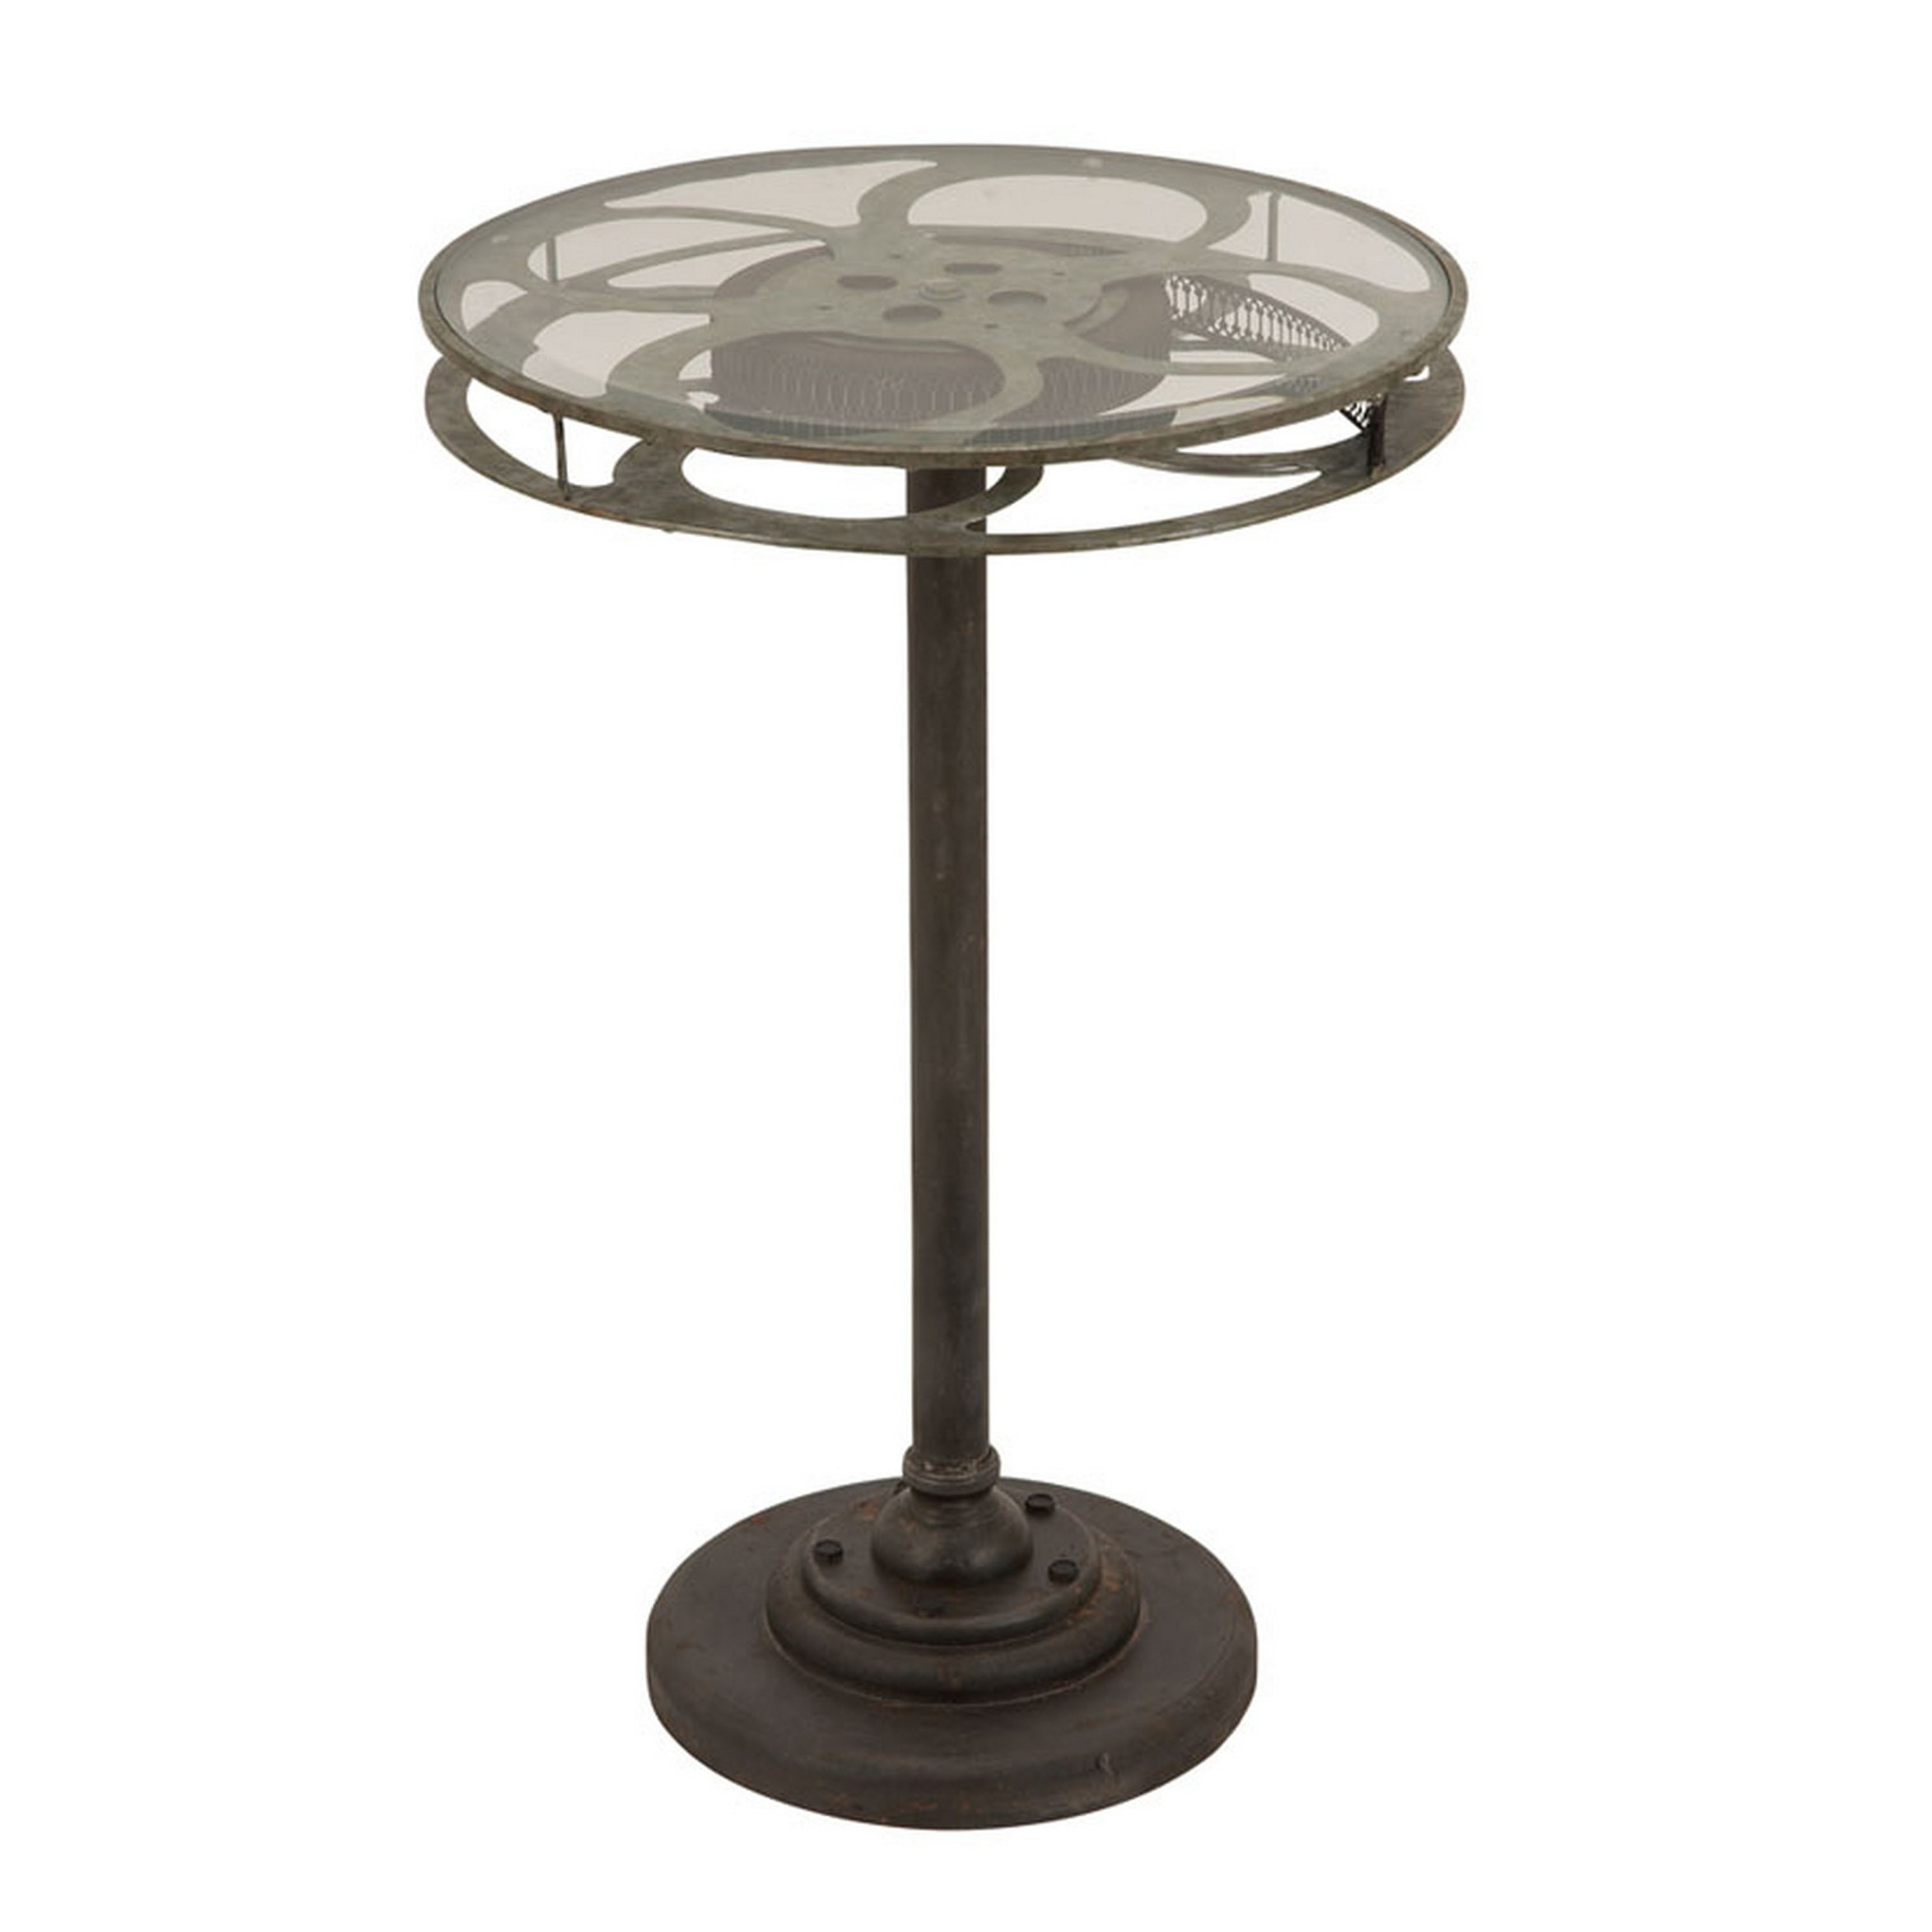 holllywood vintage film reel inch round top table free metal accent cardboard shipping today designer glass coffee tables concrete kitchen dining room furniture small modern end